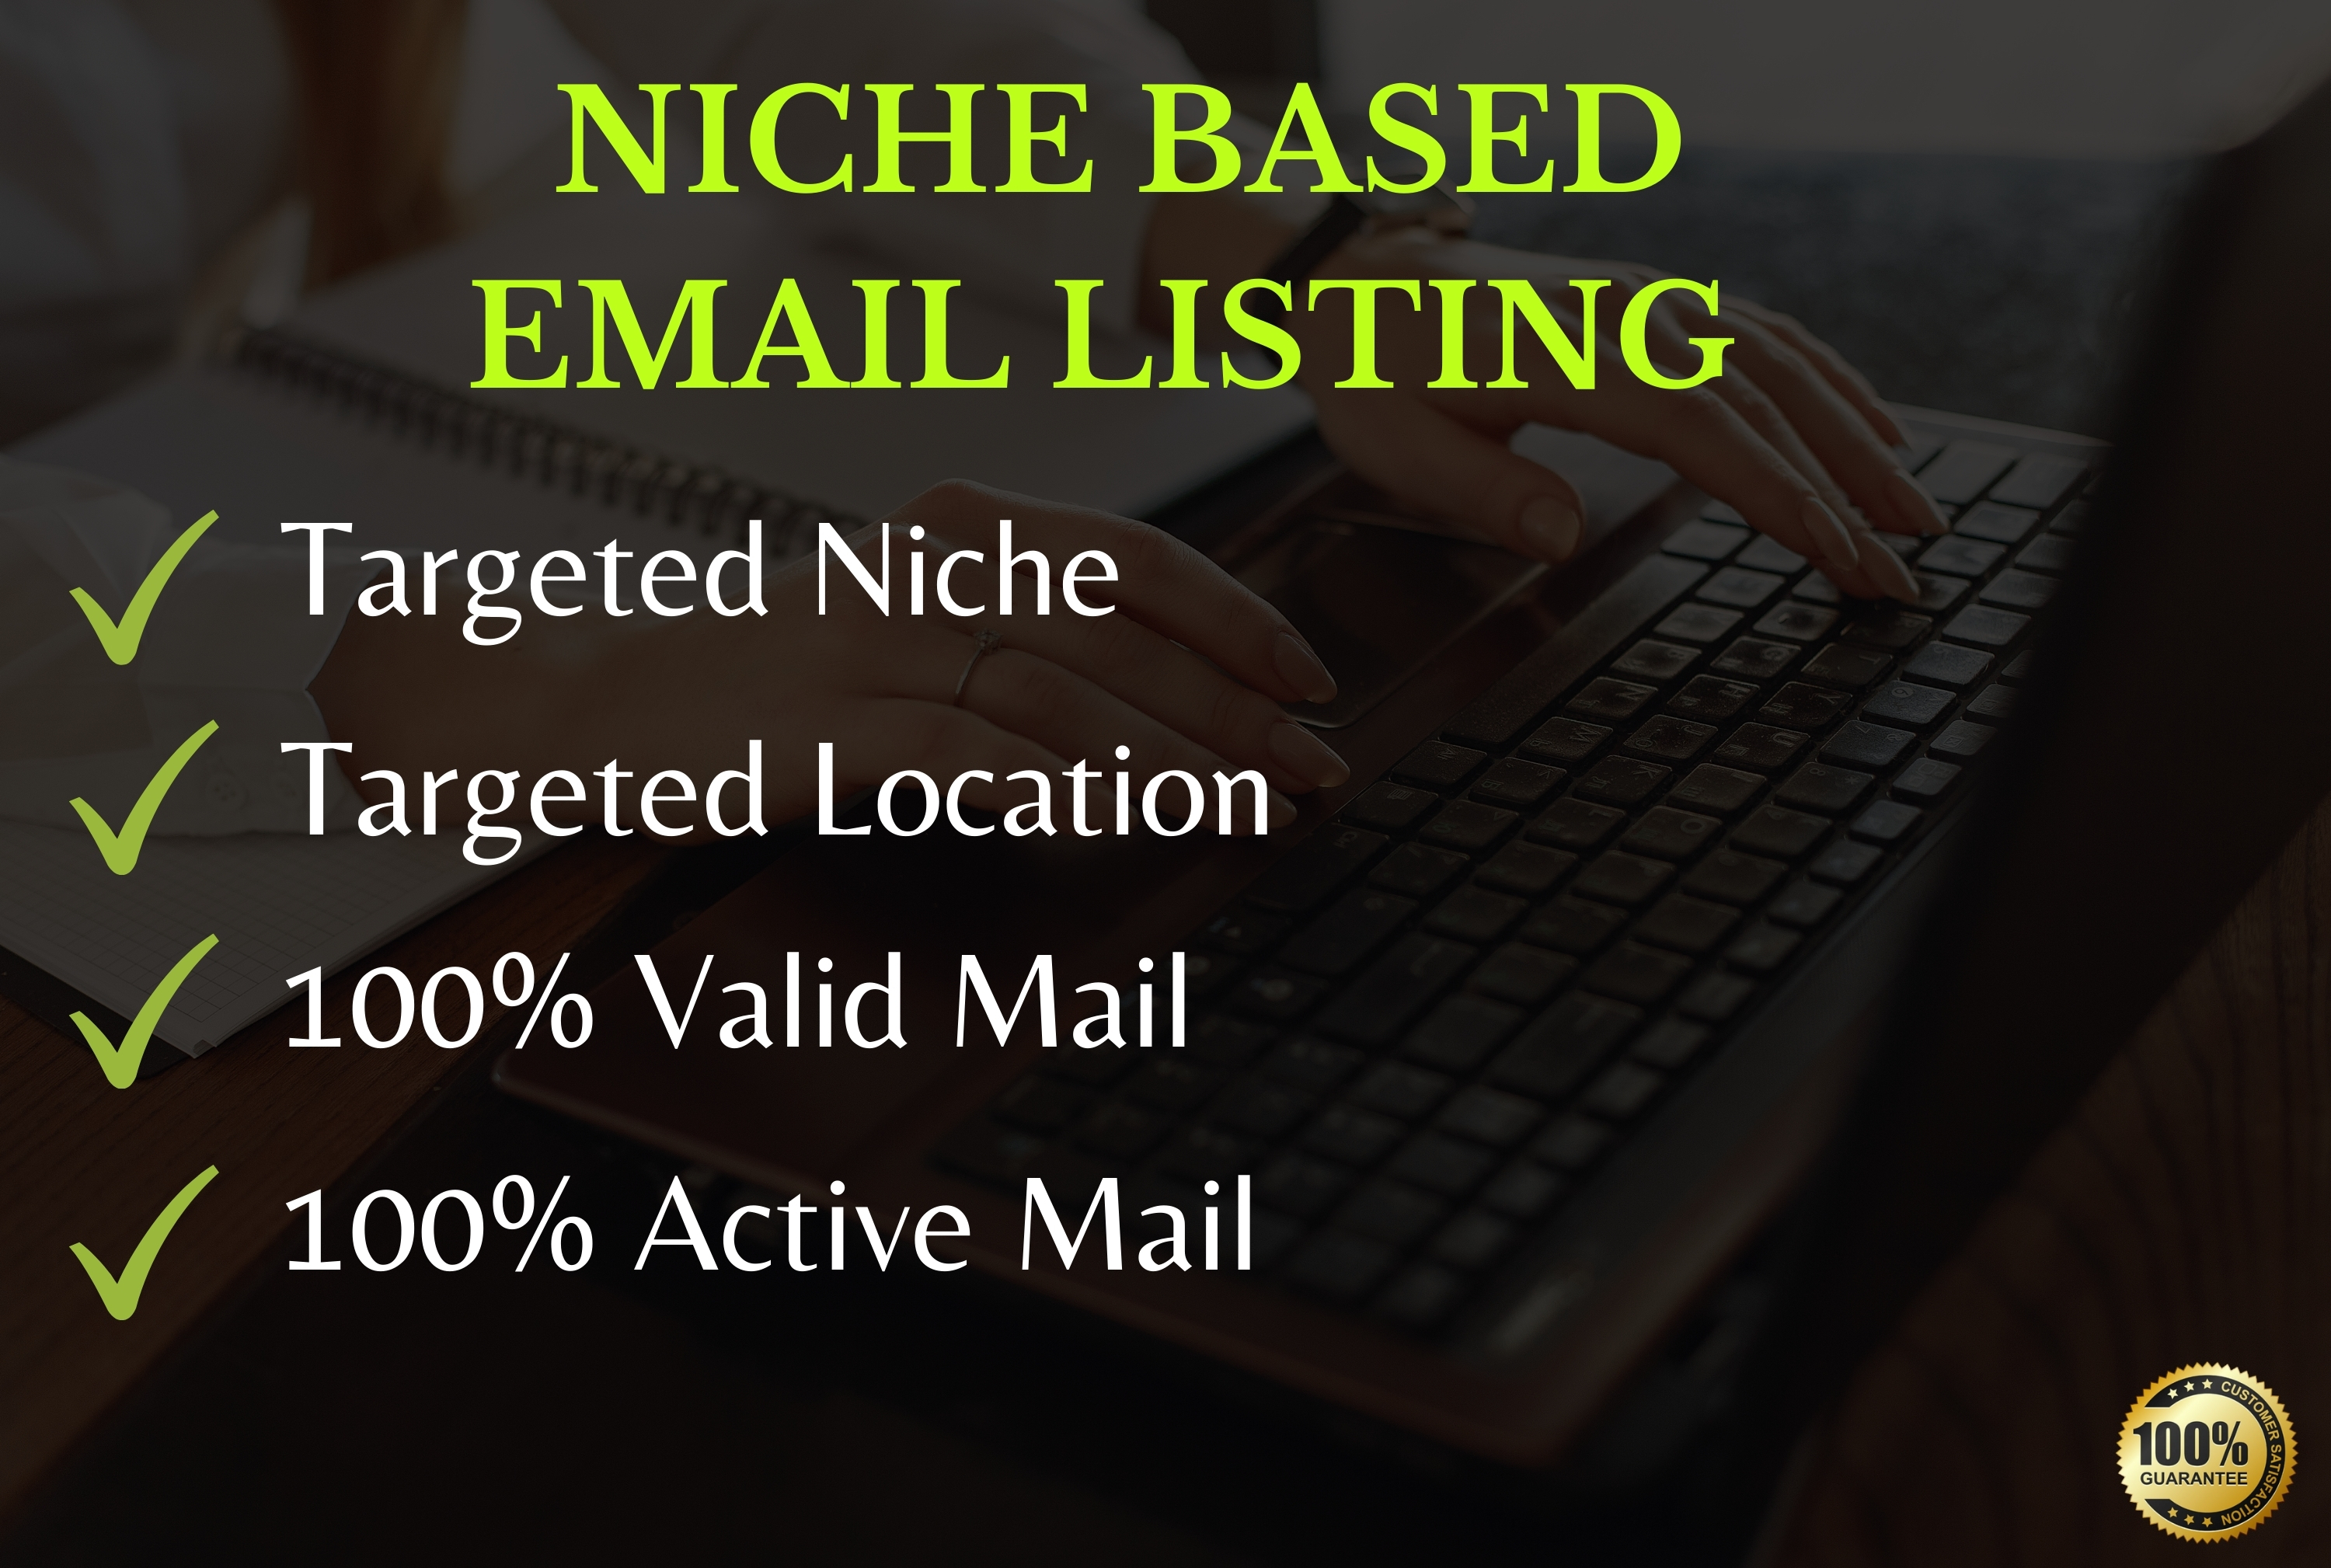 I will collect 5000 targeted niche based Email Addresses